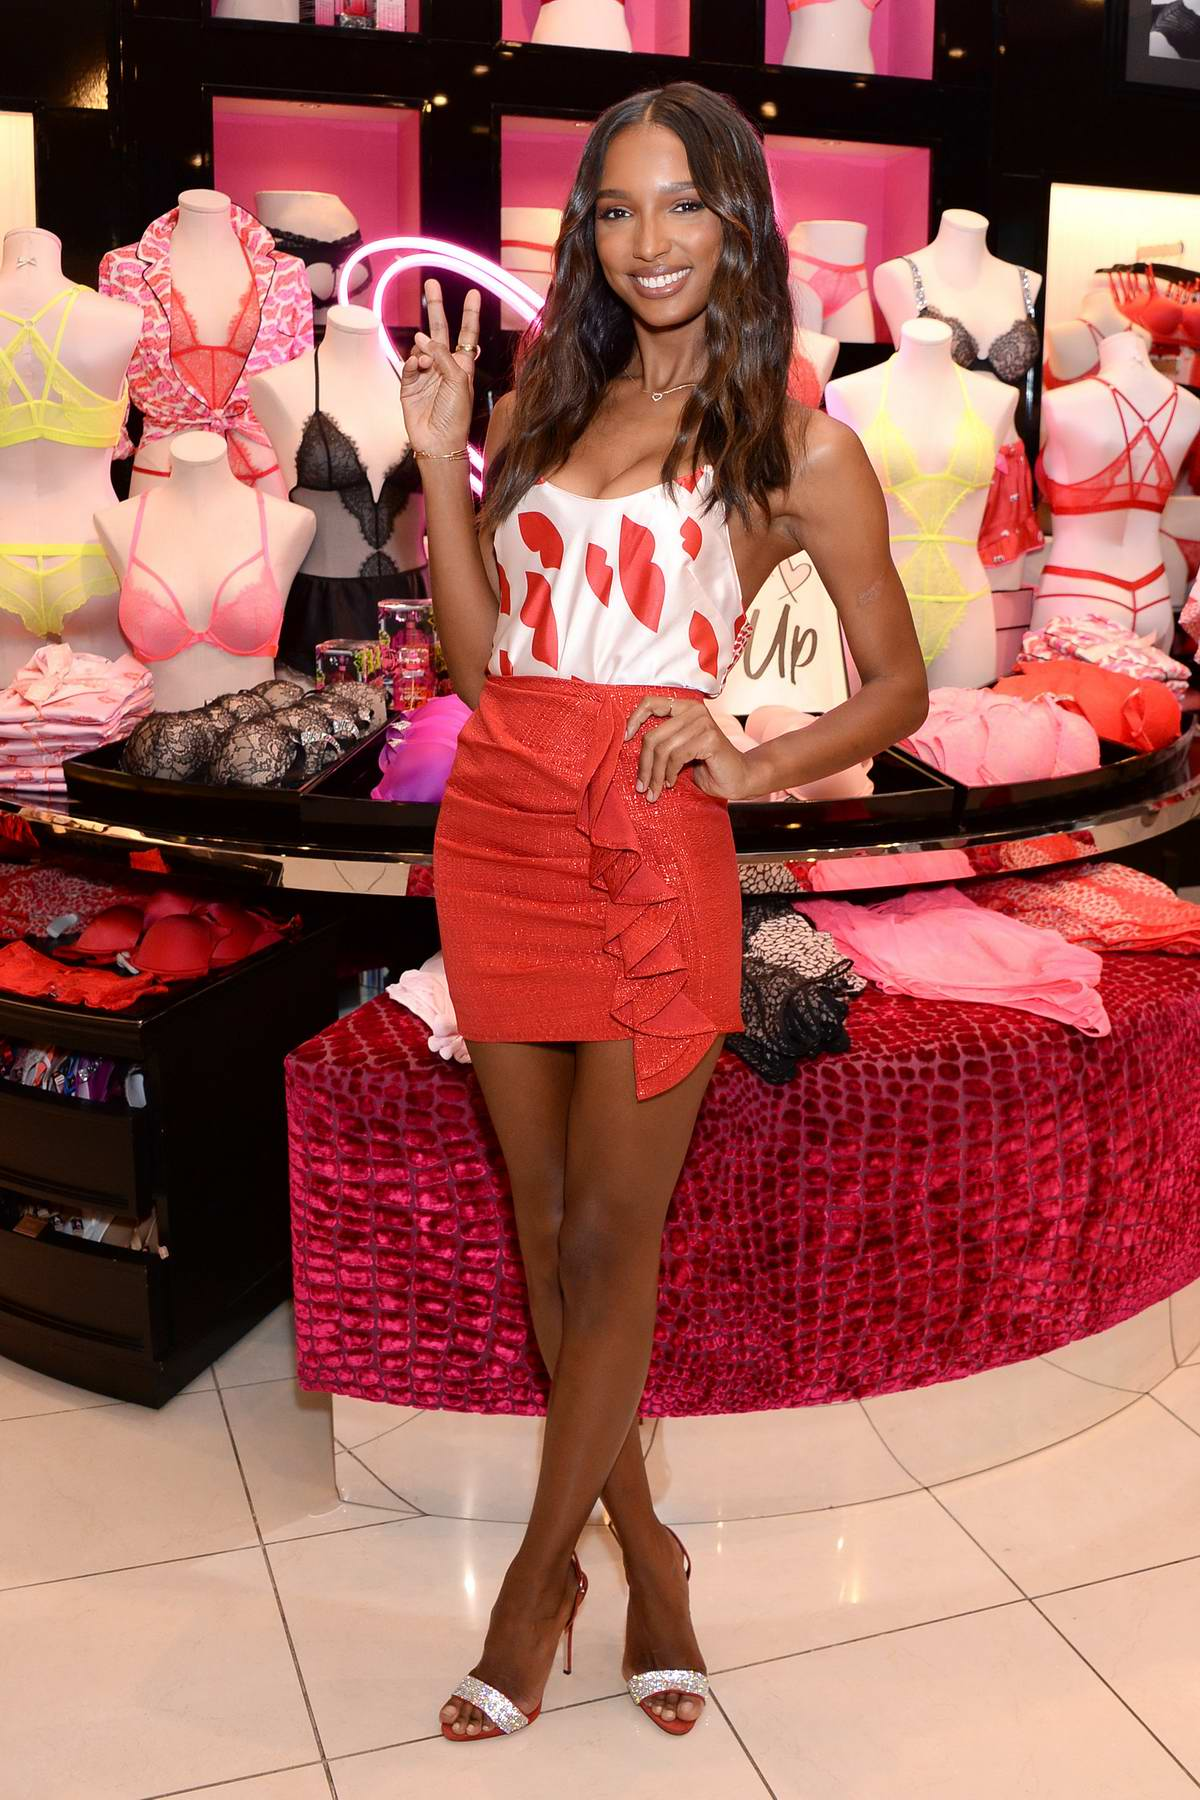 Jasmine Tookes at Victoria's Secret celebrates self-love this Valentine's Day at the Beverly Center in Los Angeles